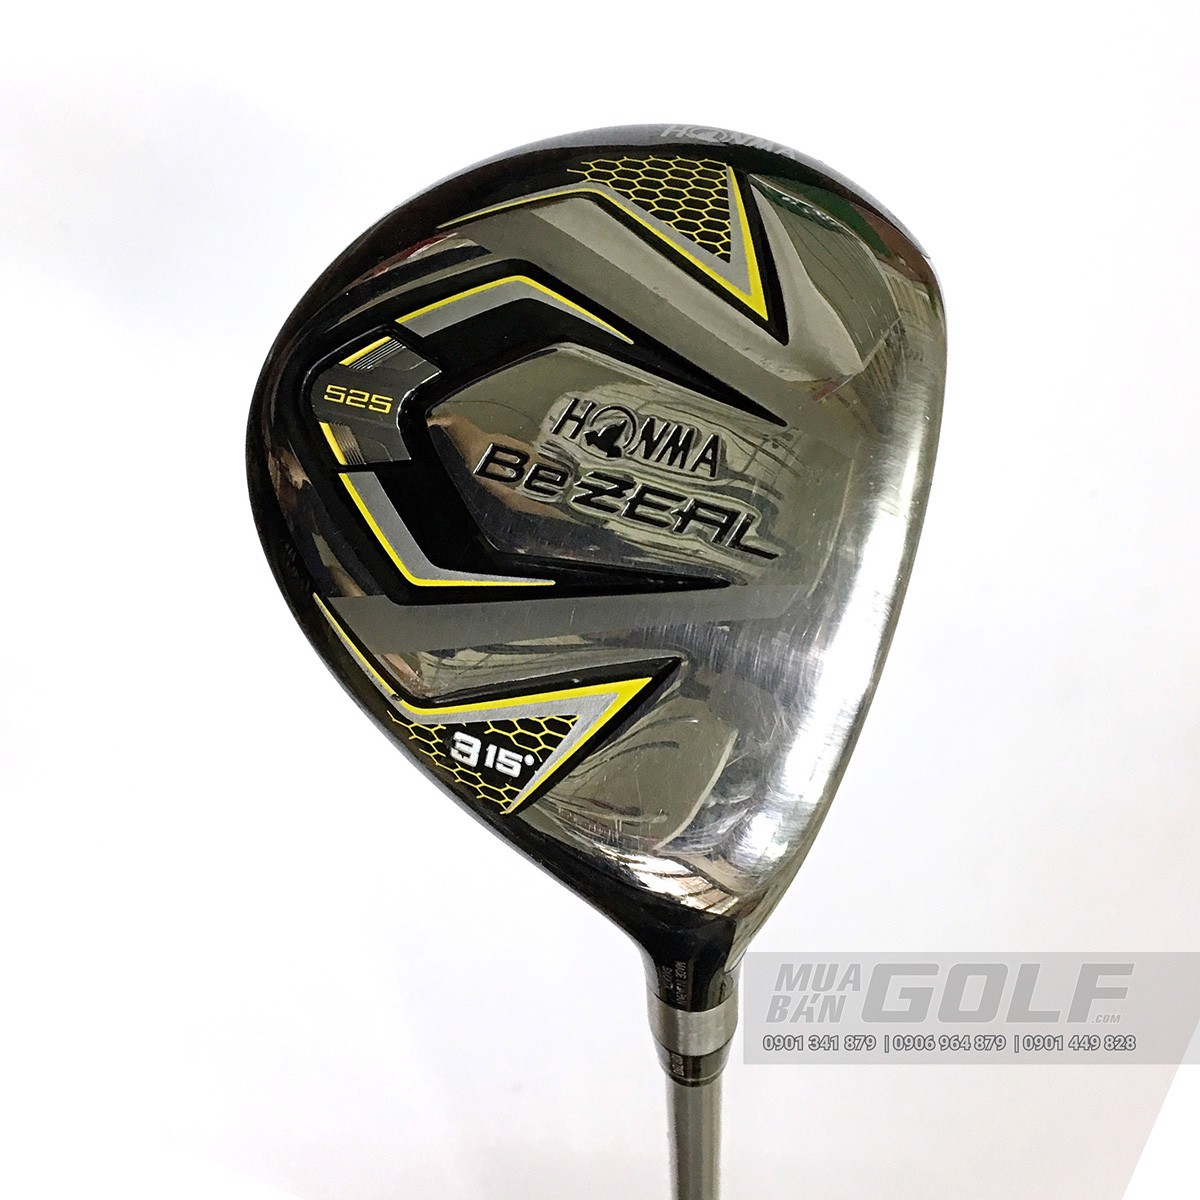 Gậy golf Fairway cũ HONMA BEZEAL 525 VIZARD Fairway3 43INCH R SCF HM7